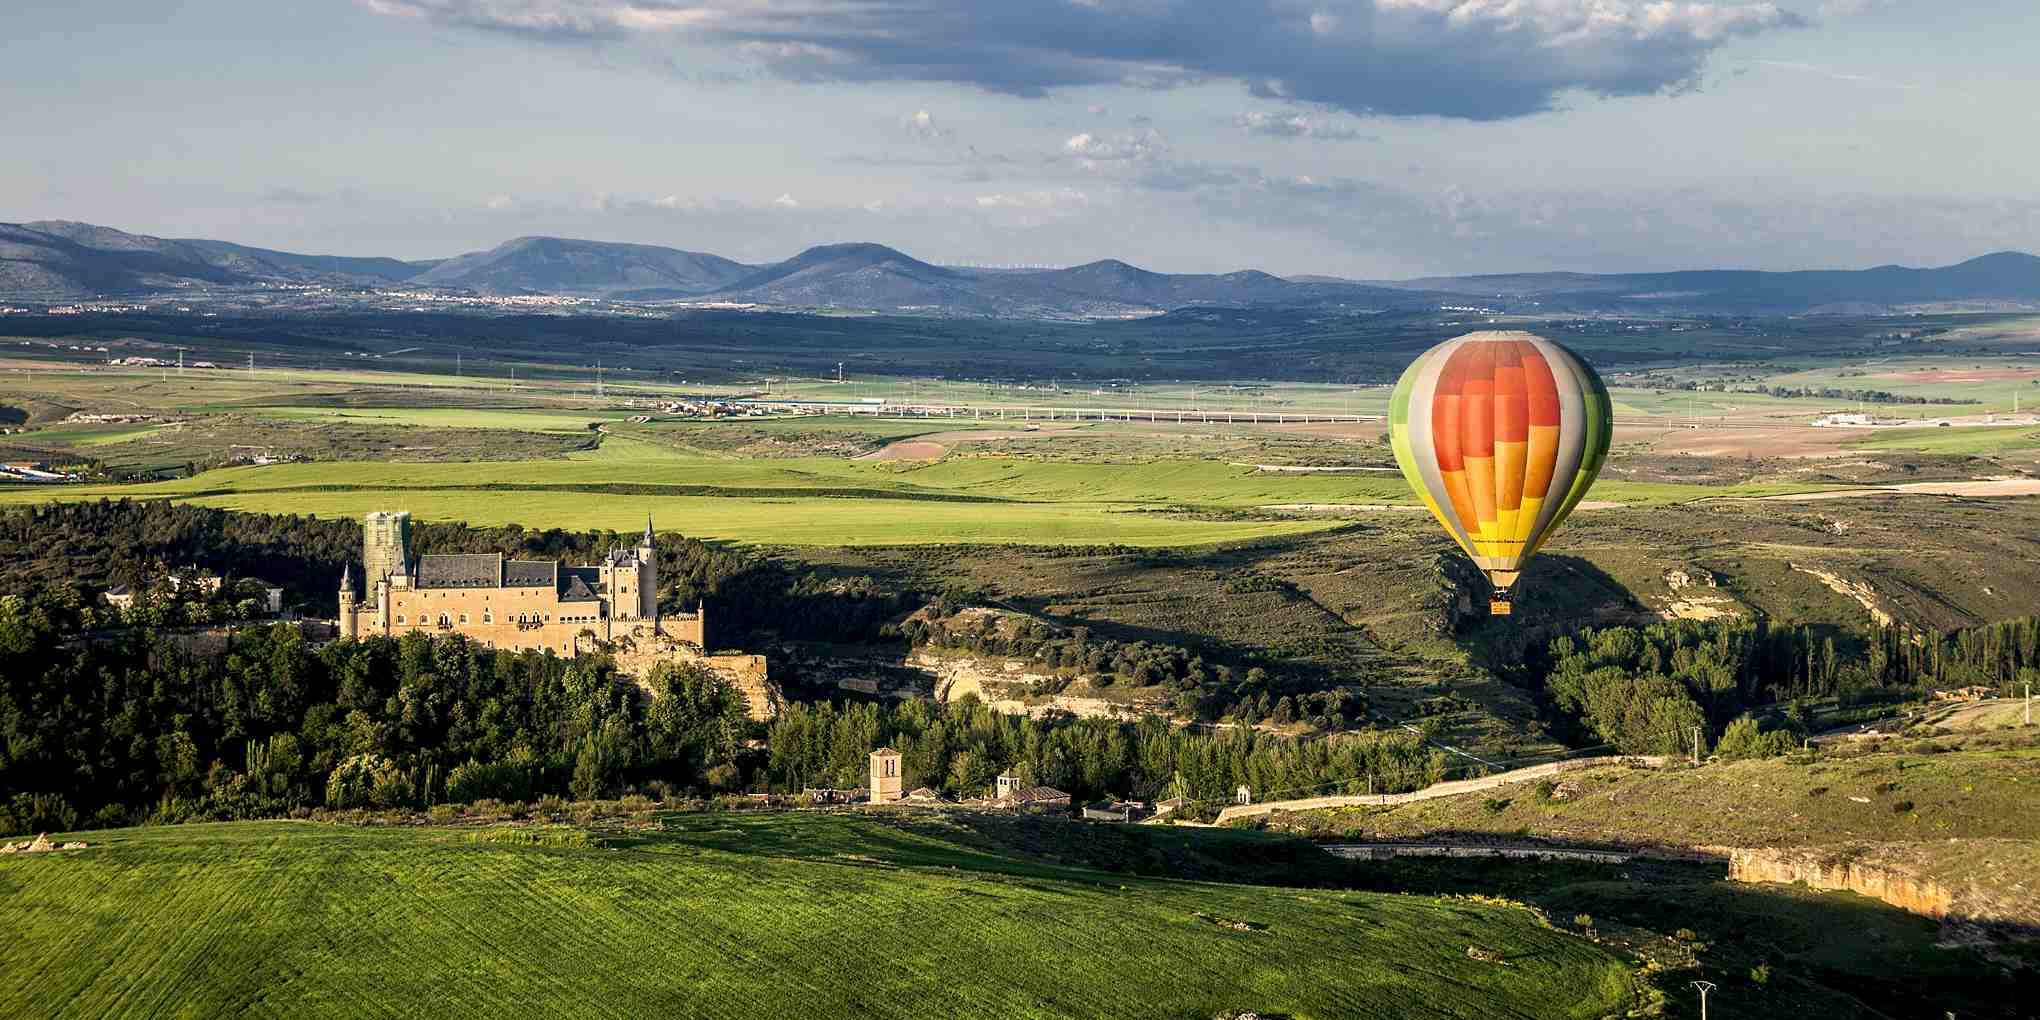 Ballooning Madrid